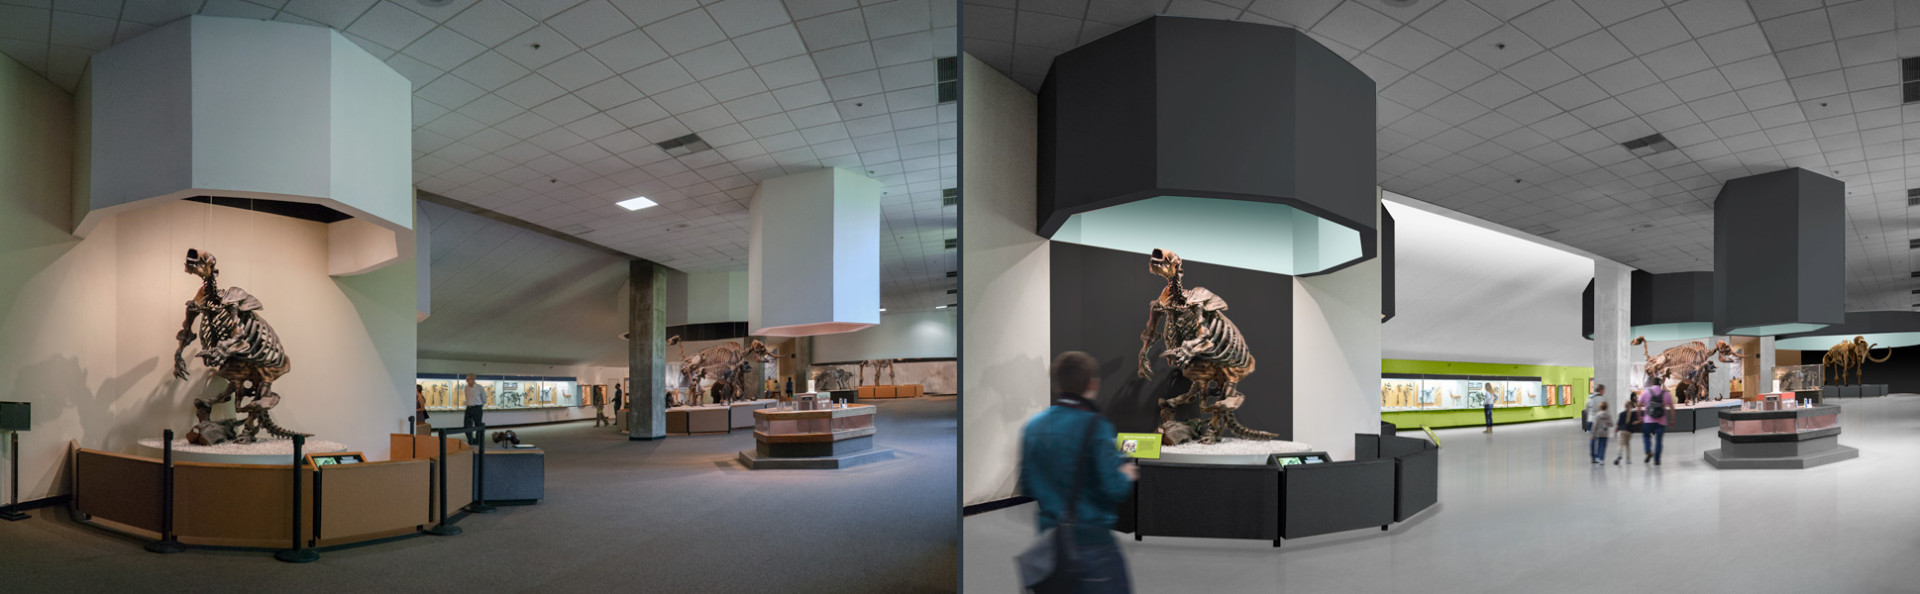 West Gallery — Before | after renovation (rendering)